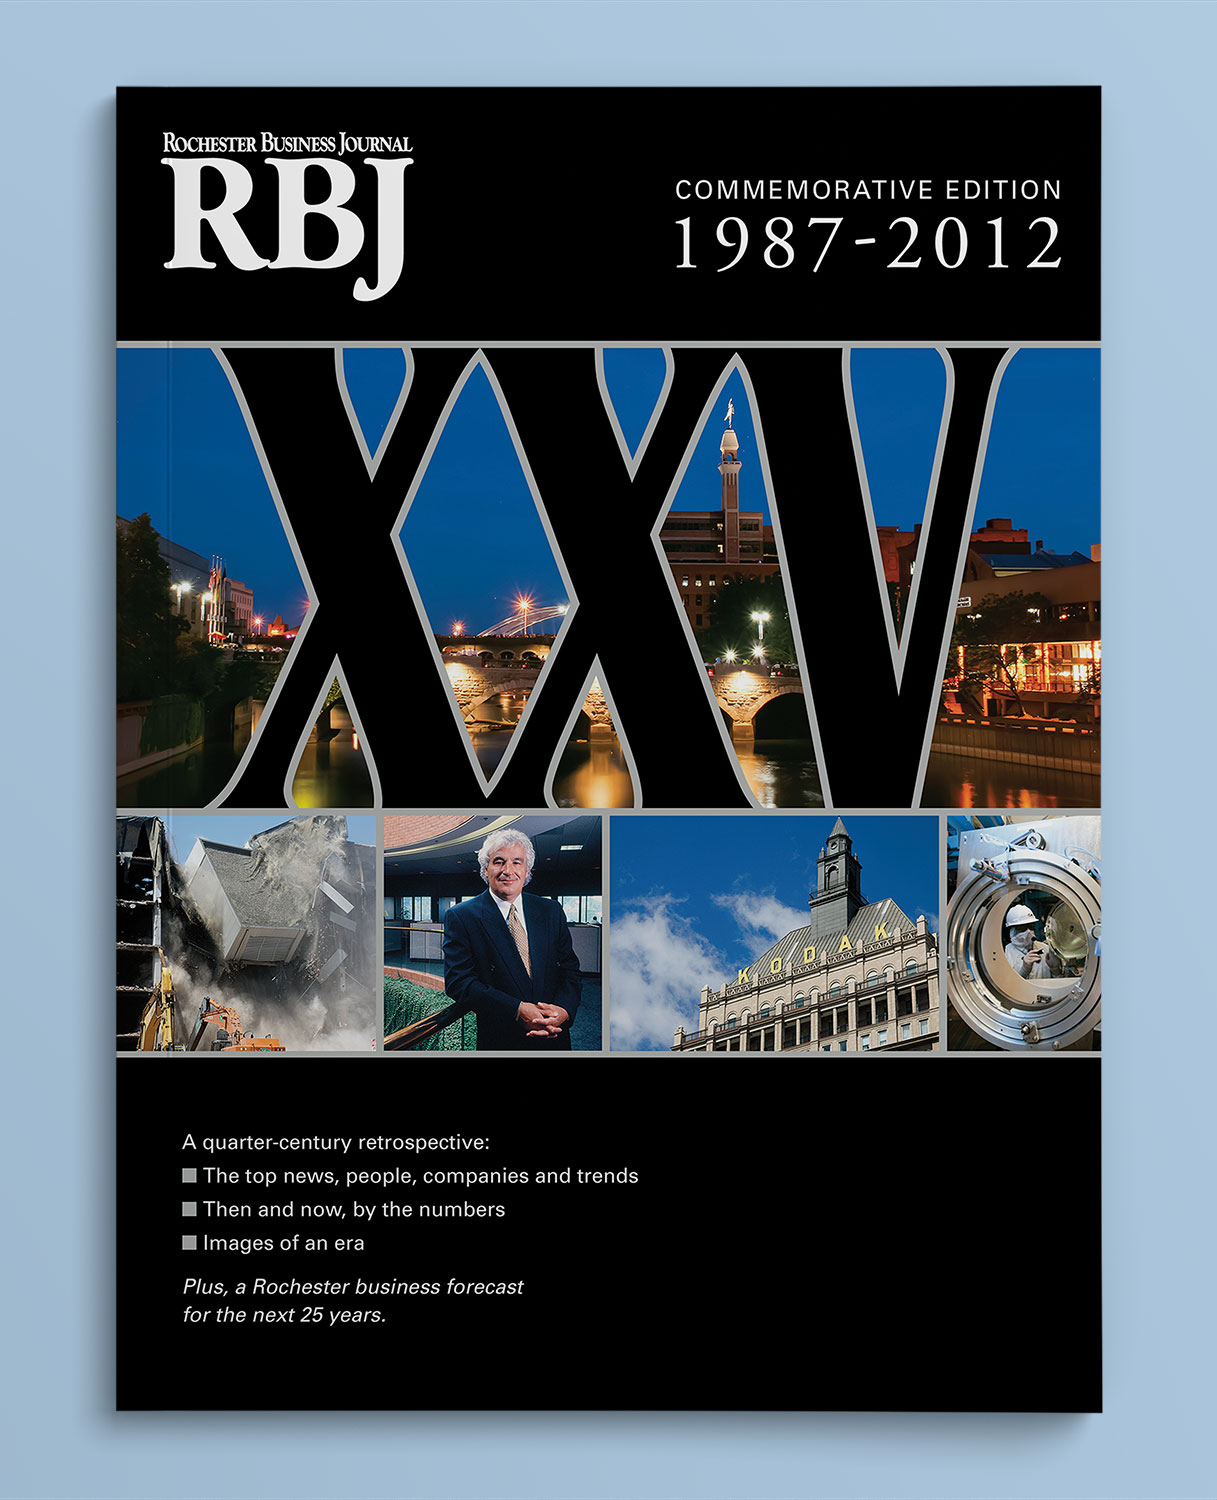 The cover of a glossy publication entitled 'RBJ Commemorative Edition 1987 - 2012.'